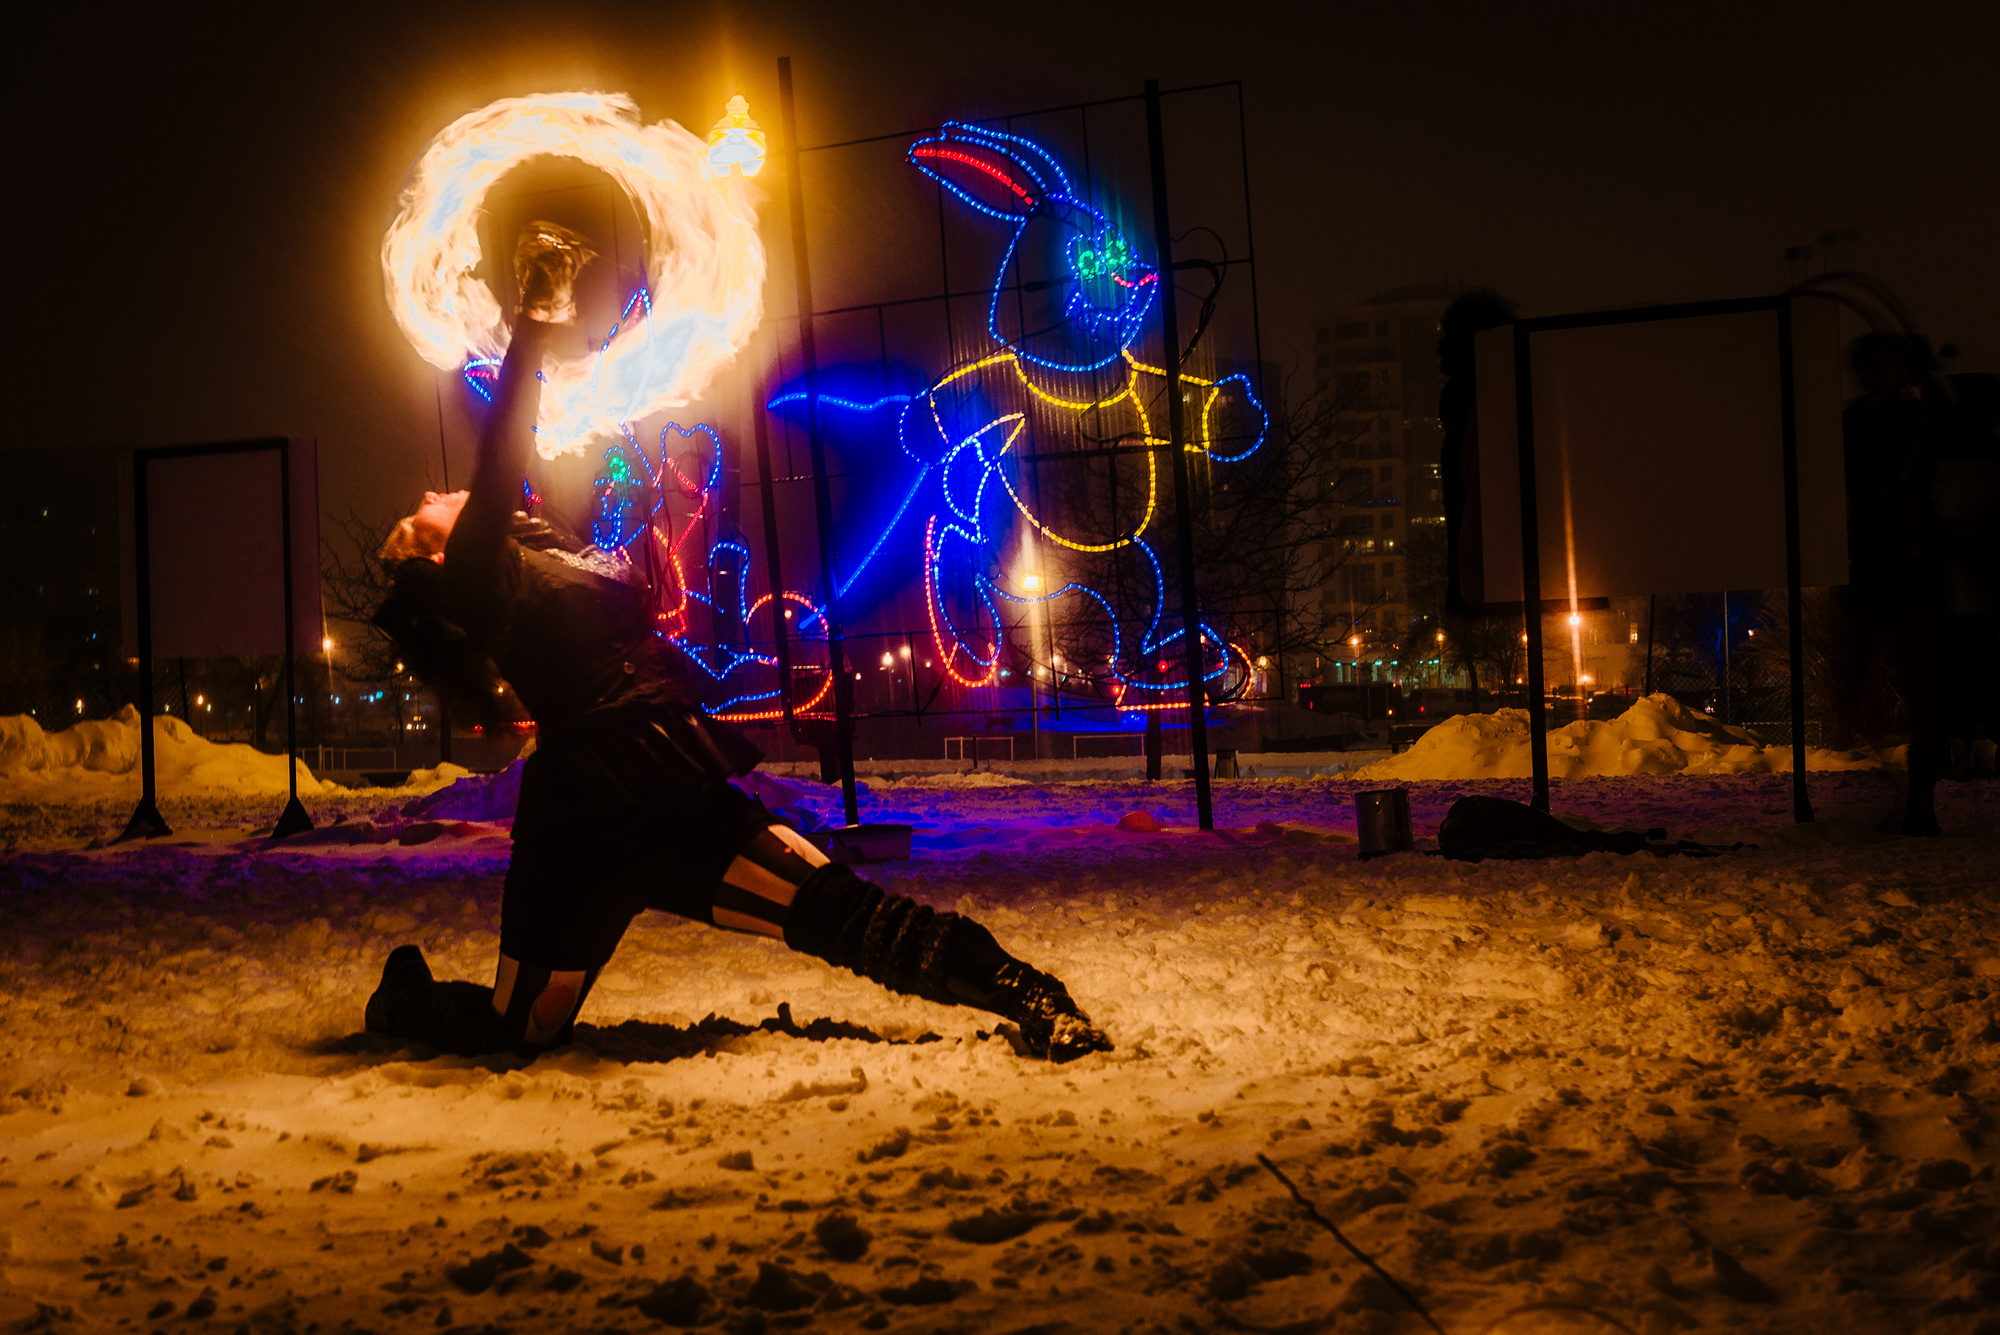 Lucy Loop fire poi dancing in Barrie's Winterfest 2015